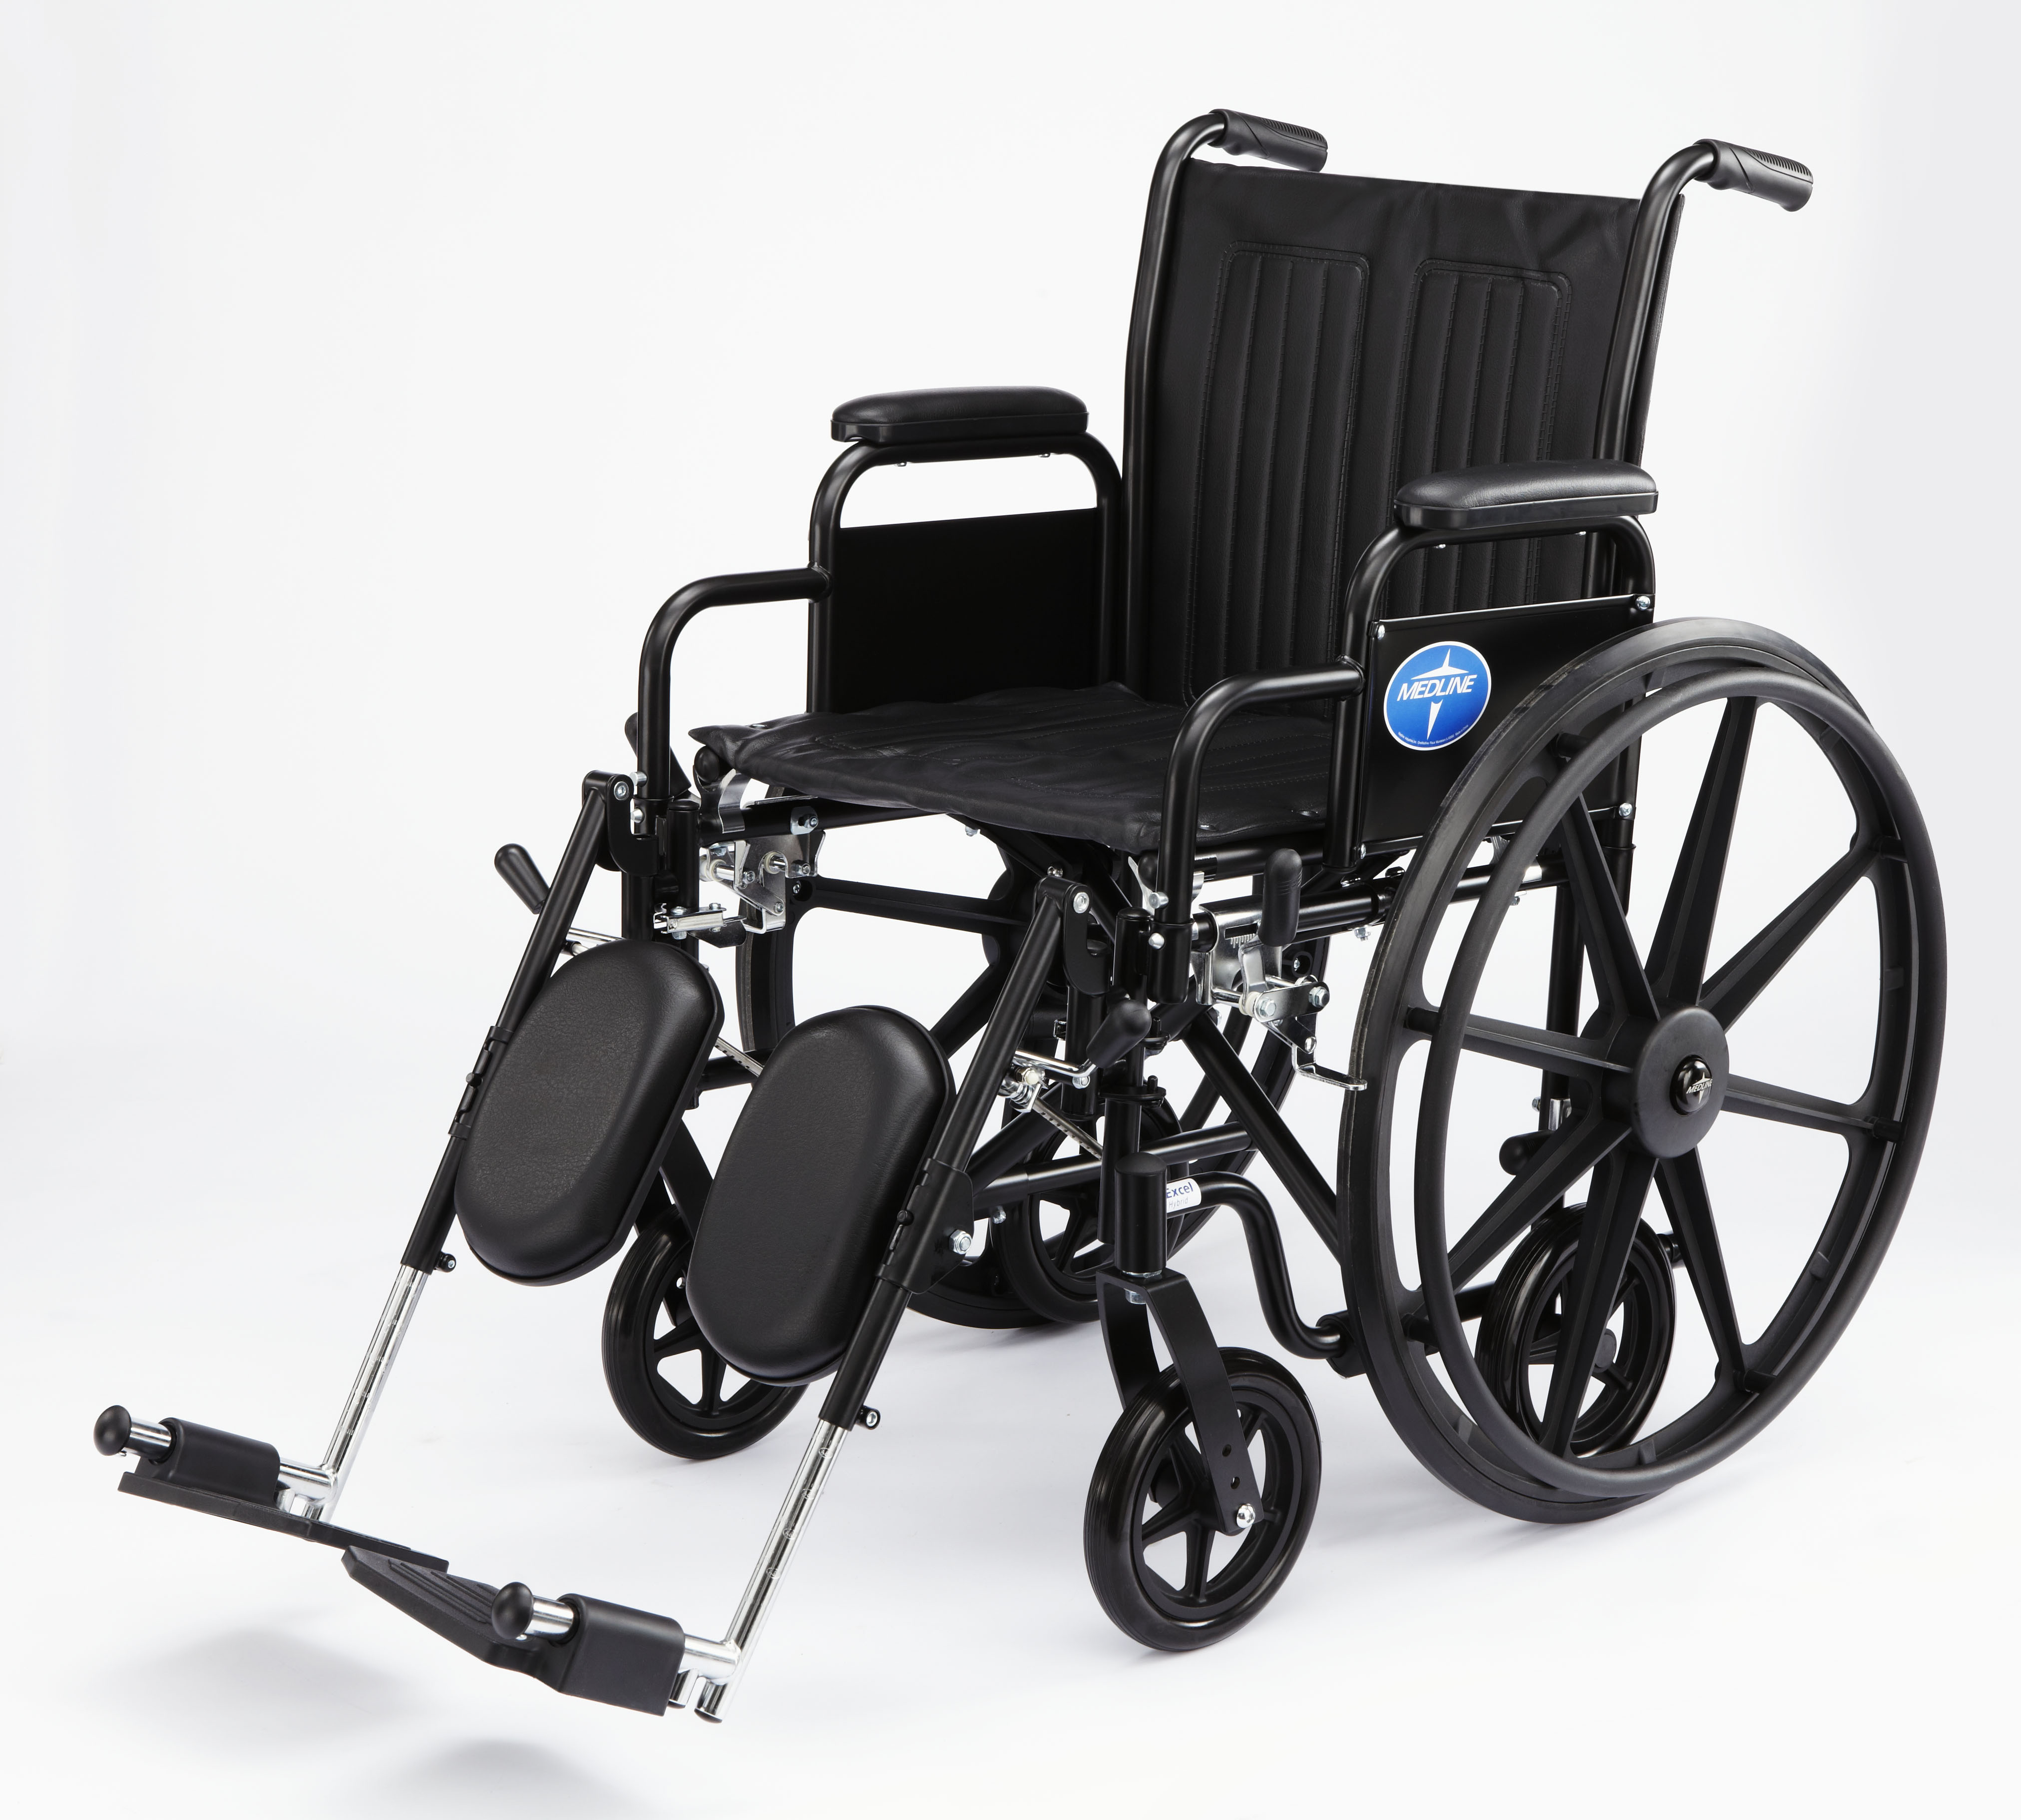 shower chair with wheels and removable arms hanging stand for sale hybrid wheelchair (standard transport combo) desk arms, elevating legrests